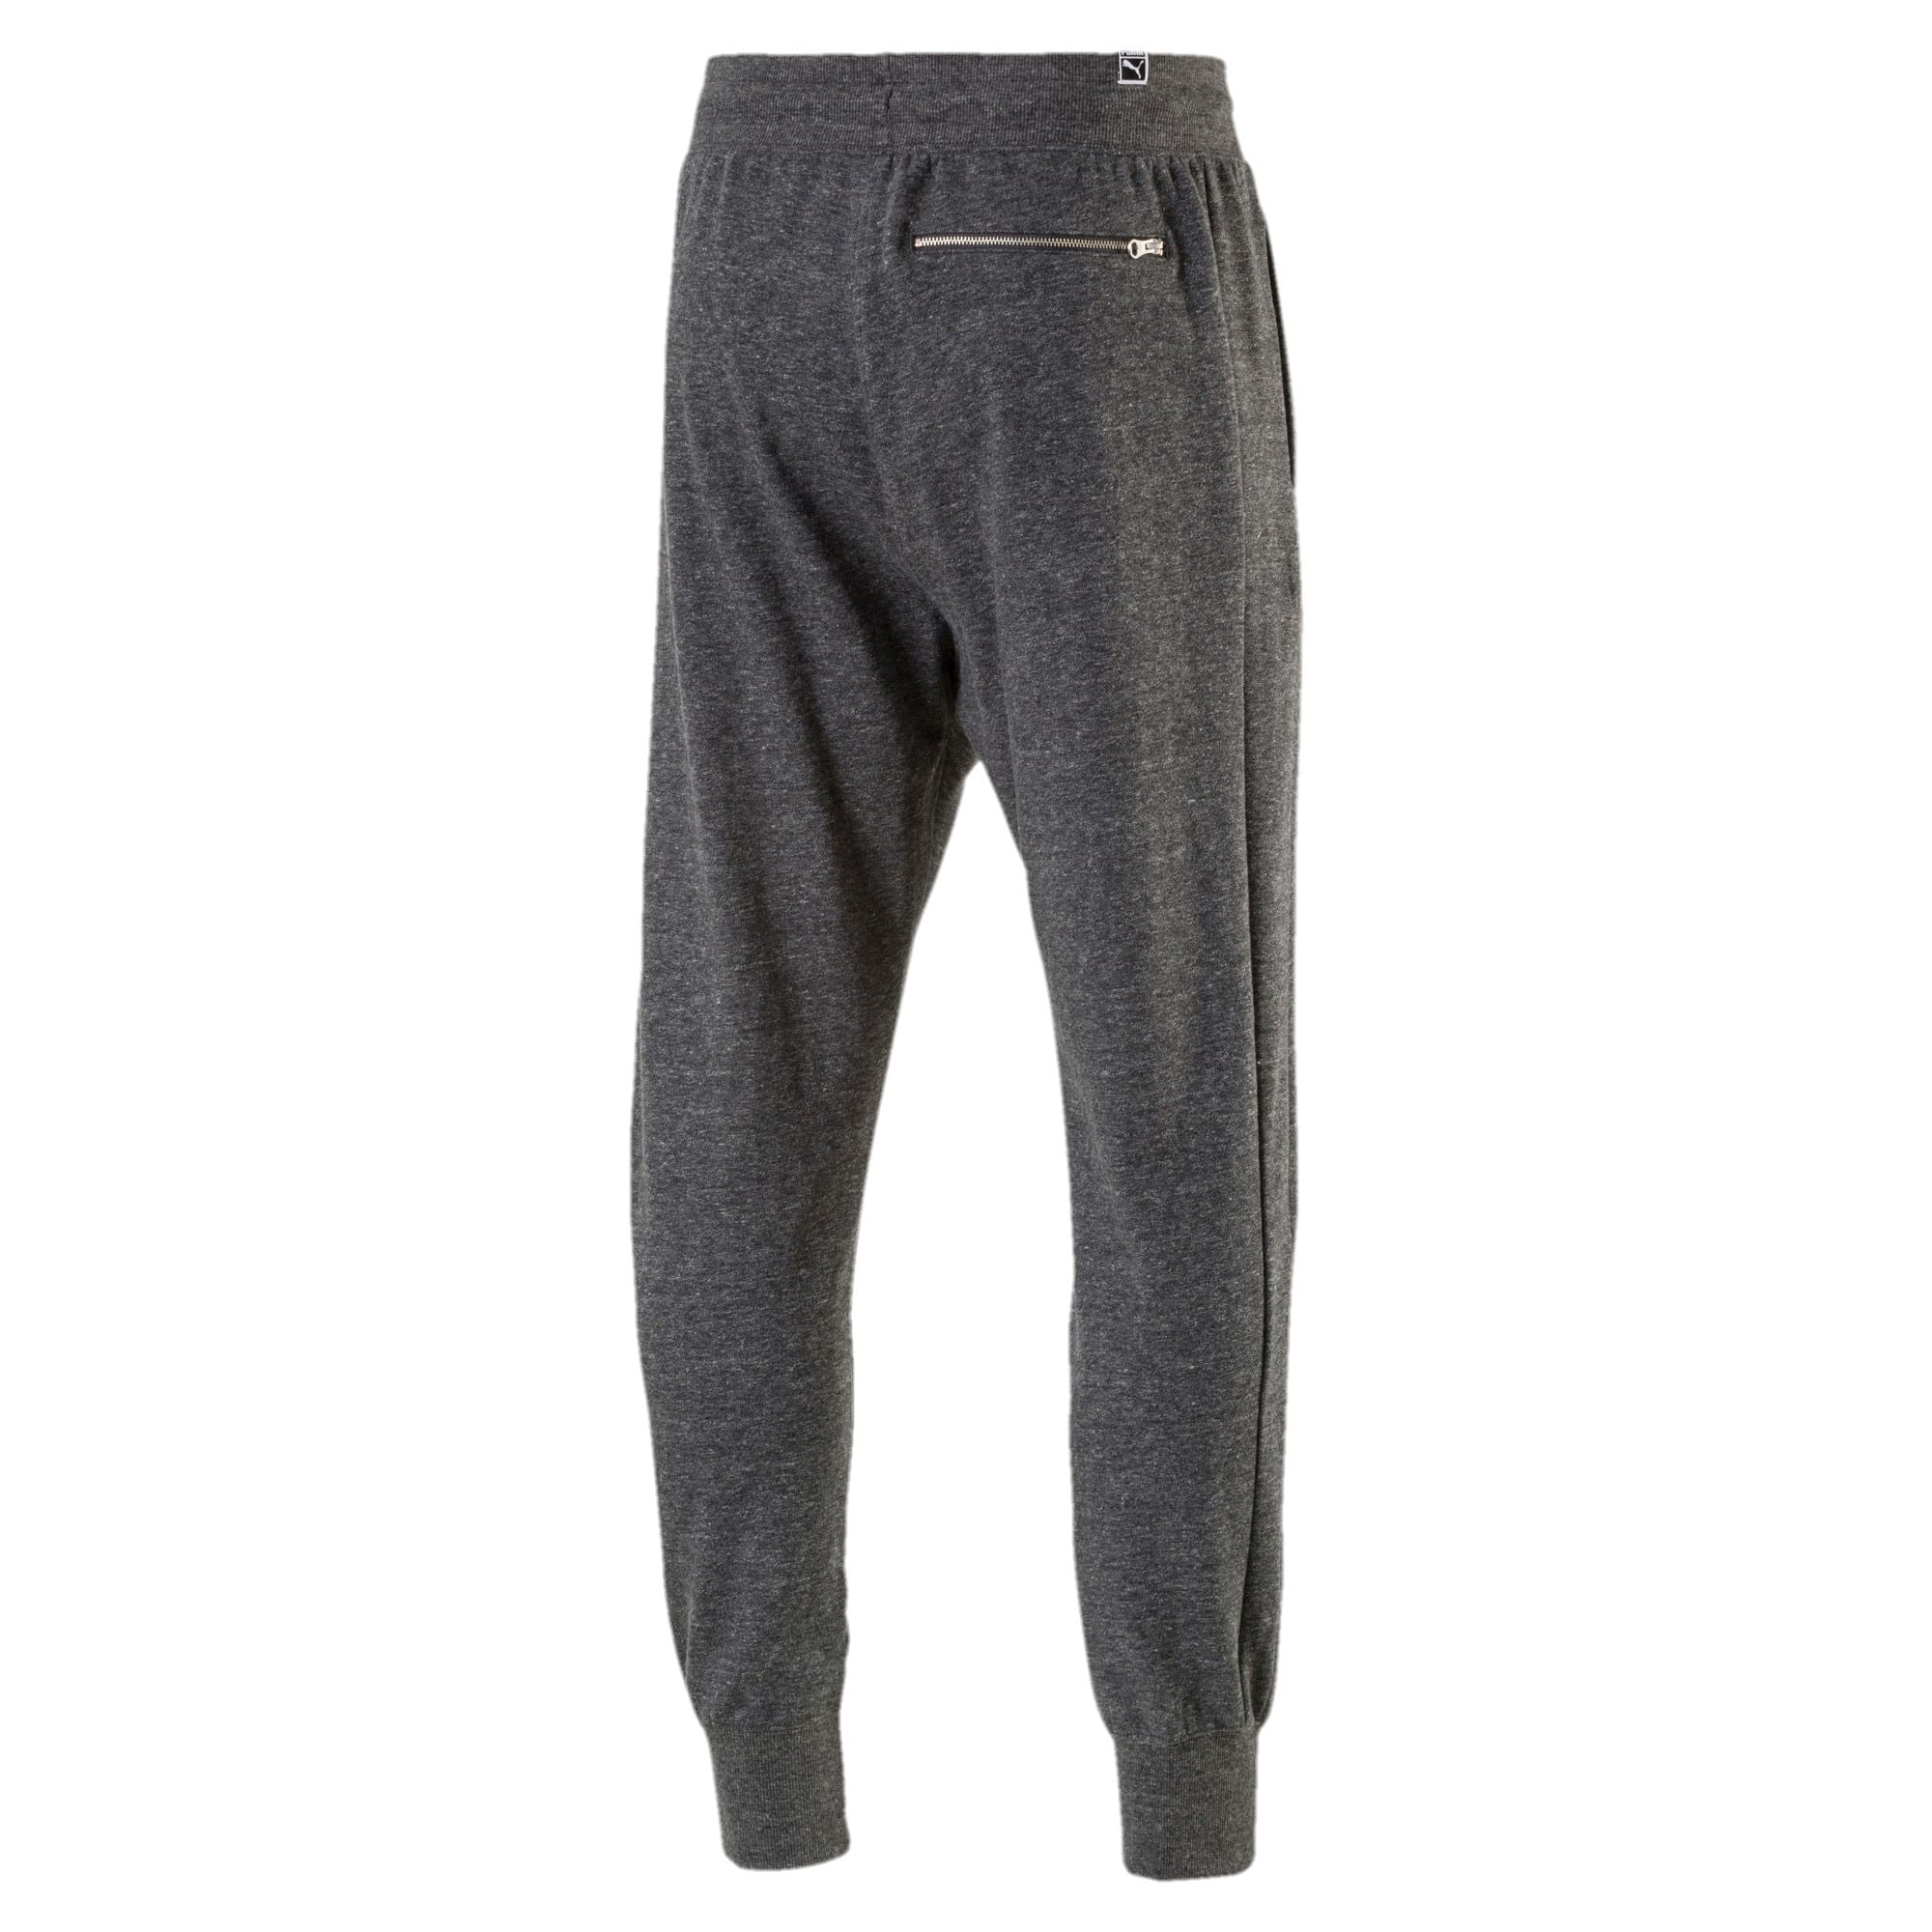 Thumbnail 4 of Men's Suede T7 Fleece Sweatpants, Puma Black Heather, medium-IND